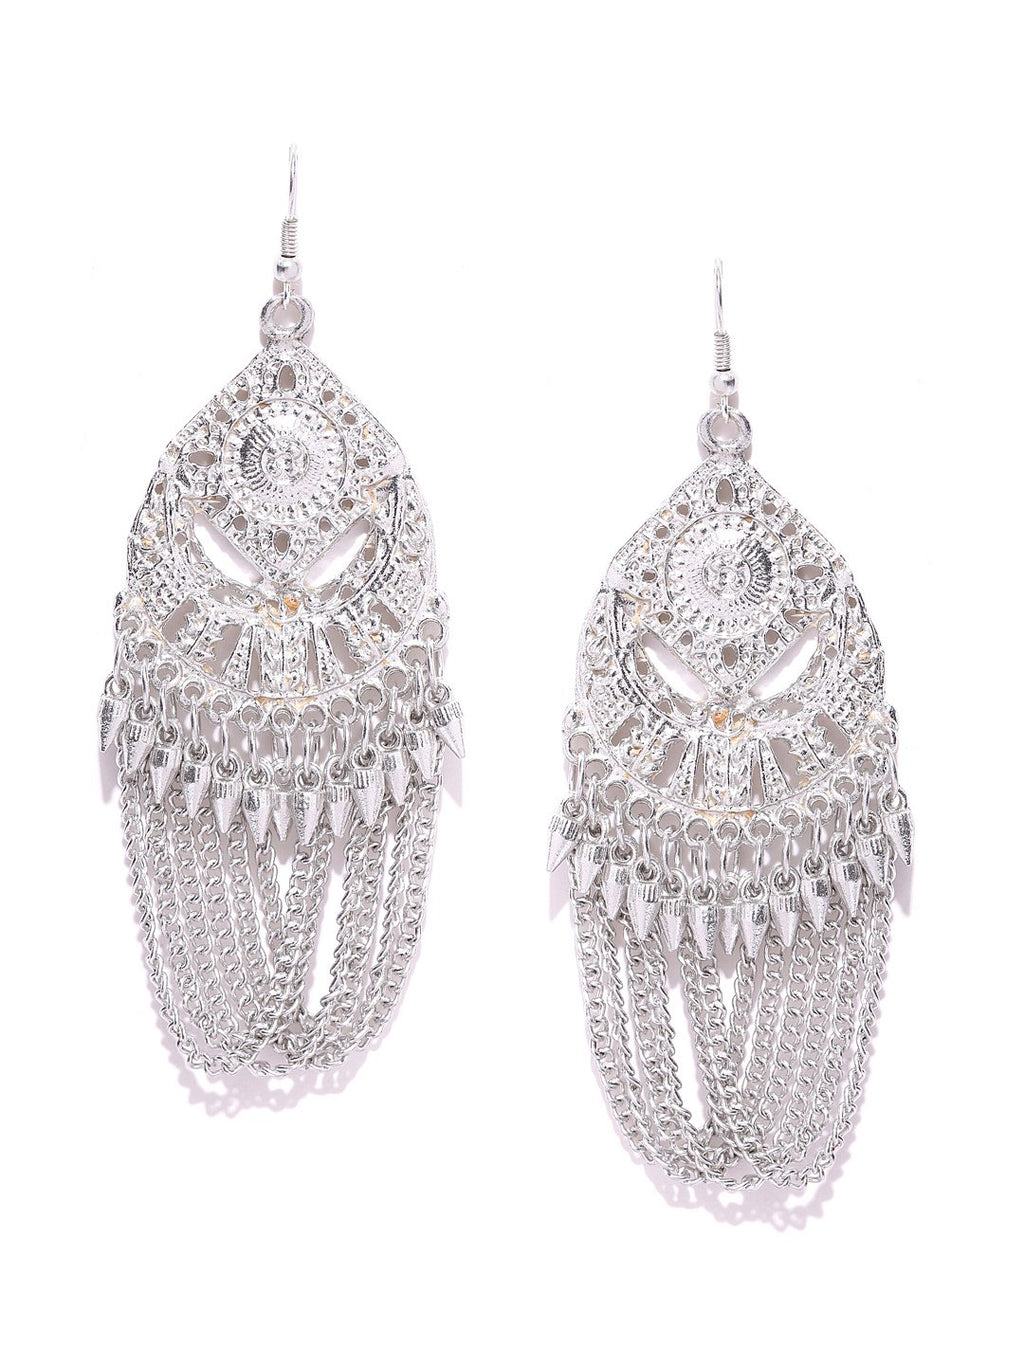 Silver toned drop earrings